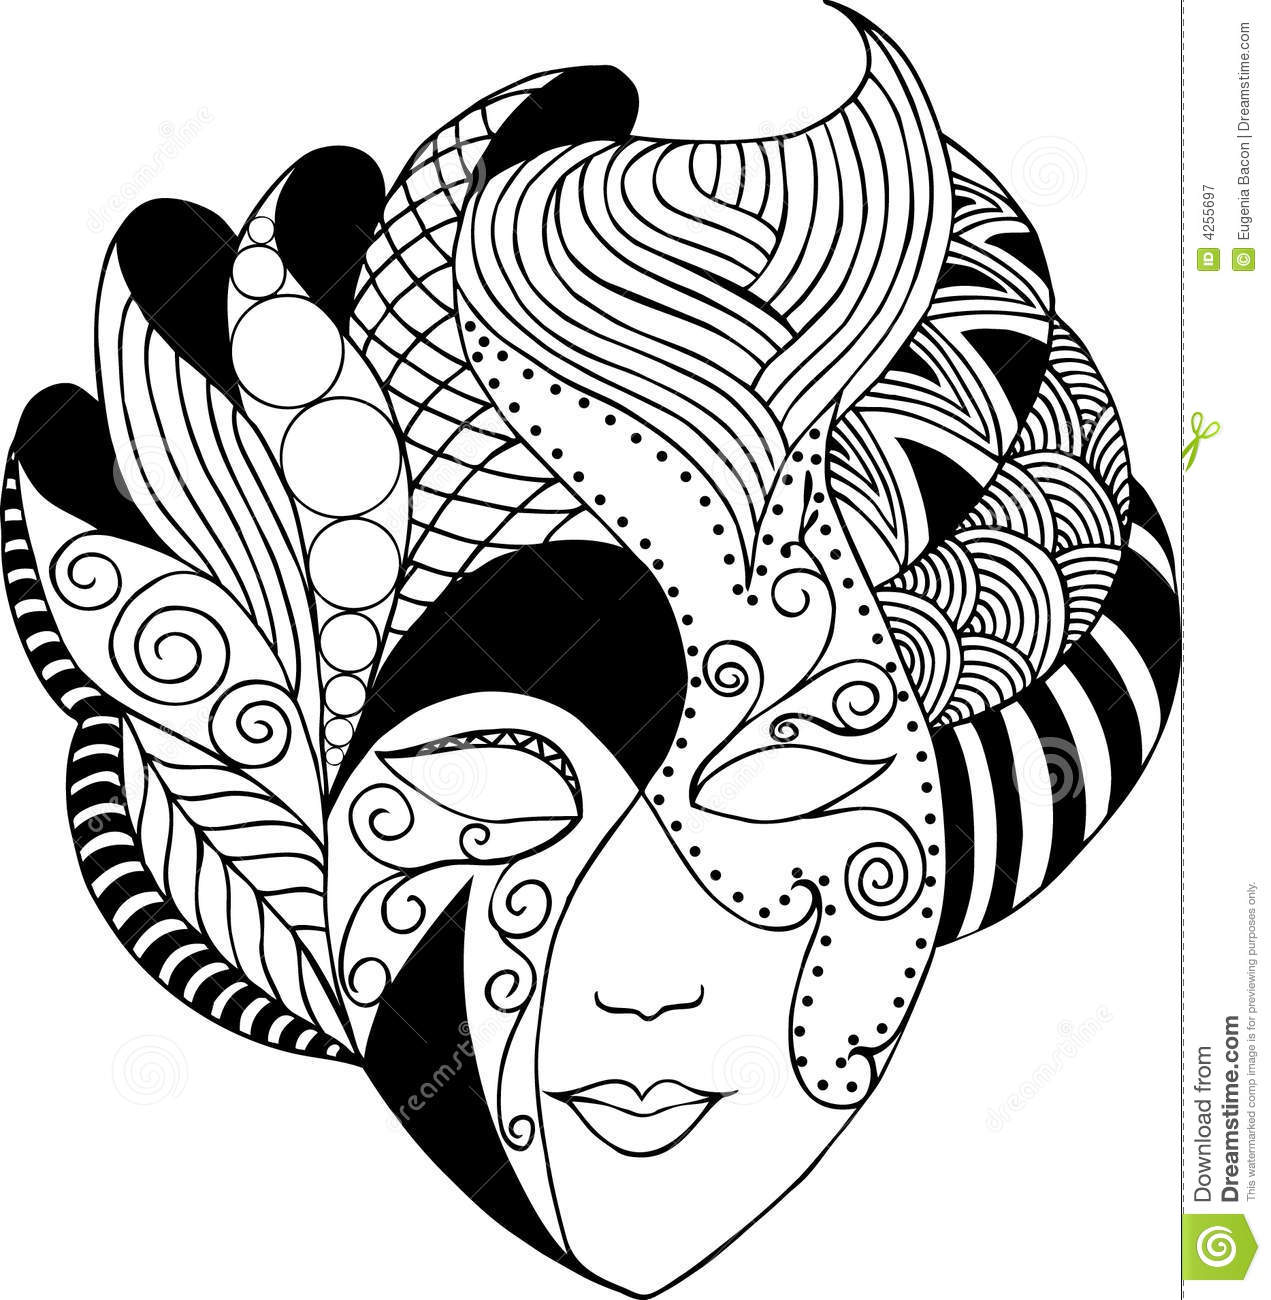 Graphic Vector Mask Royalty Free Stock Photography